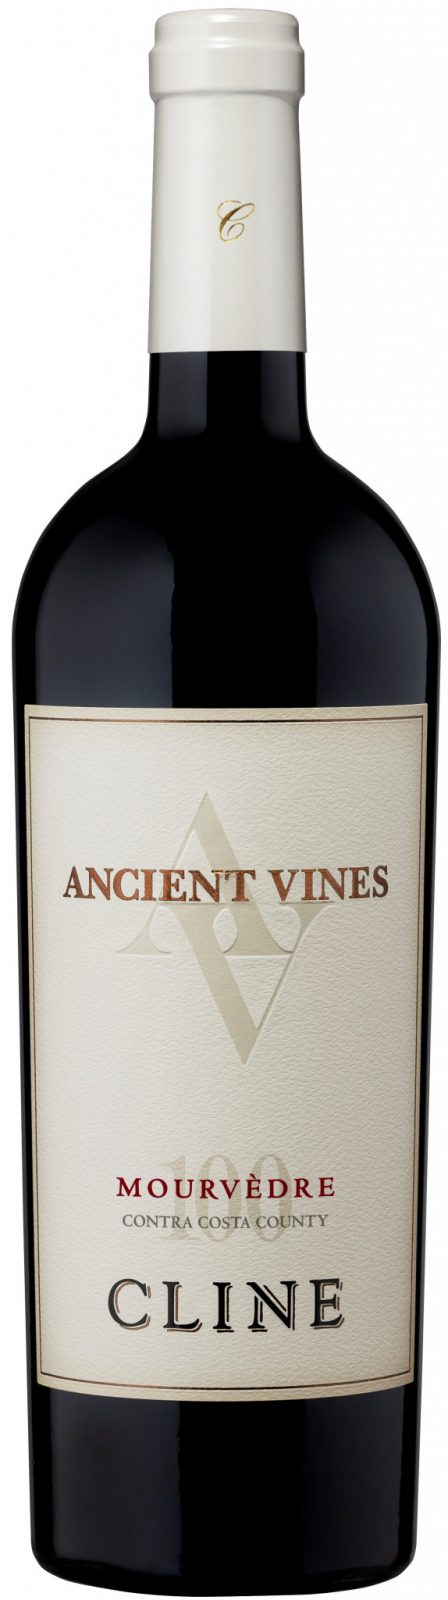 Cline Ancient Vines Mourvédre - wineaffair